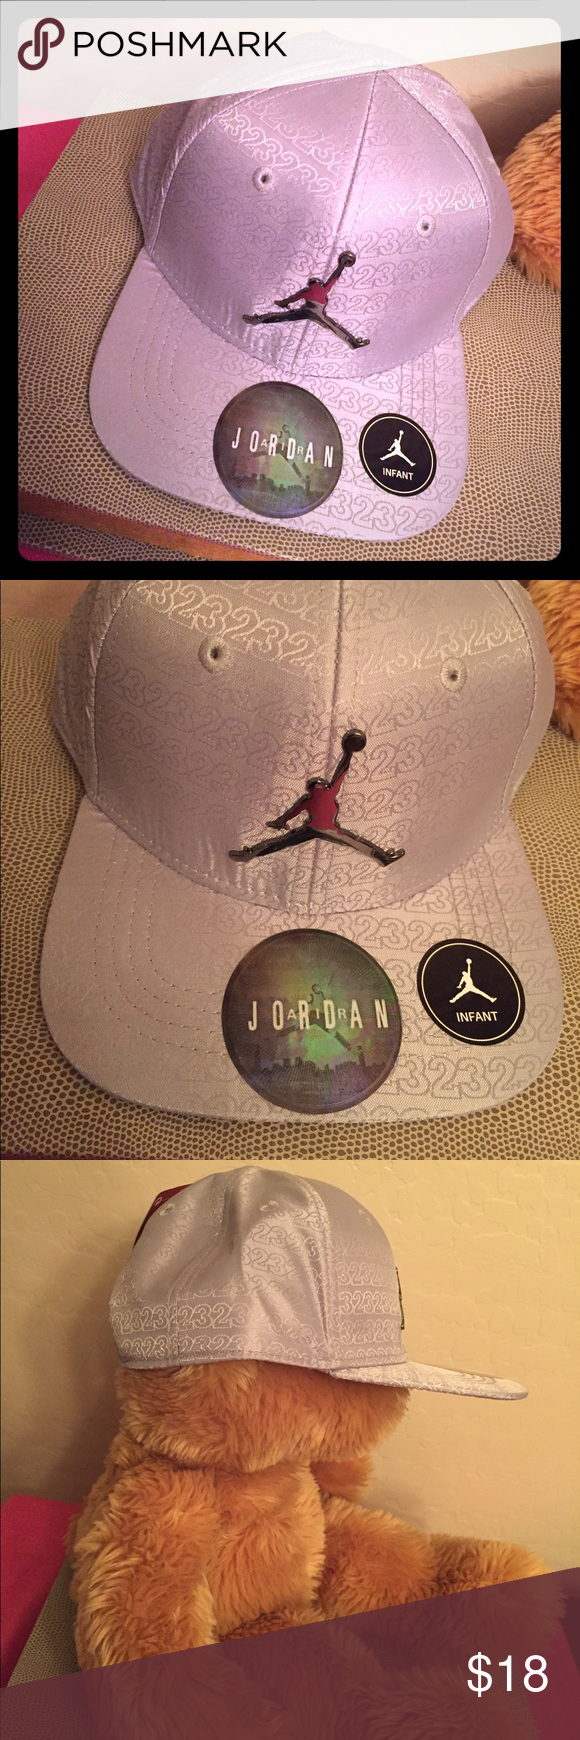 3fdc983efcd7f2 ONLY 1! Jordan Infant SnapBack Cap Authentic Jordan Infant SnapBack Cap.  12-24 Months. Silver with Repeating 23 s Pattern on the Body   the Bill  (Underbill ...